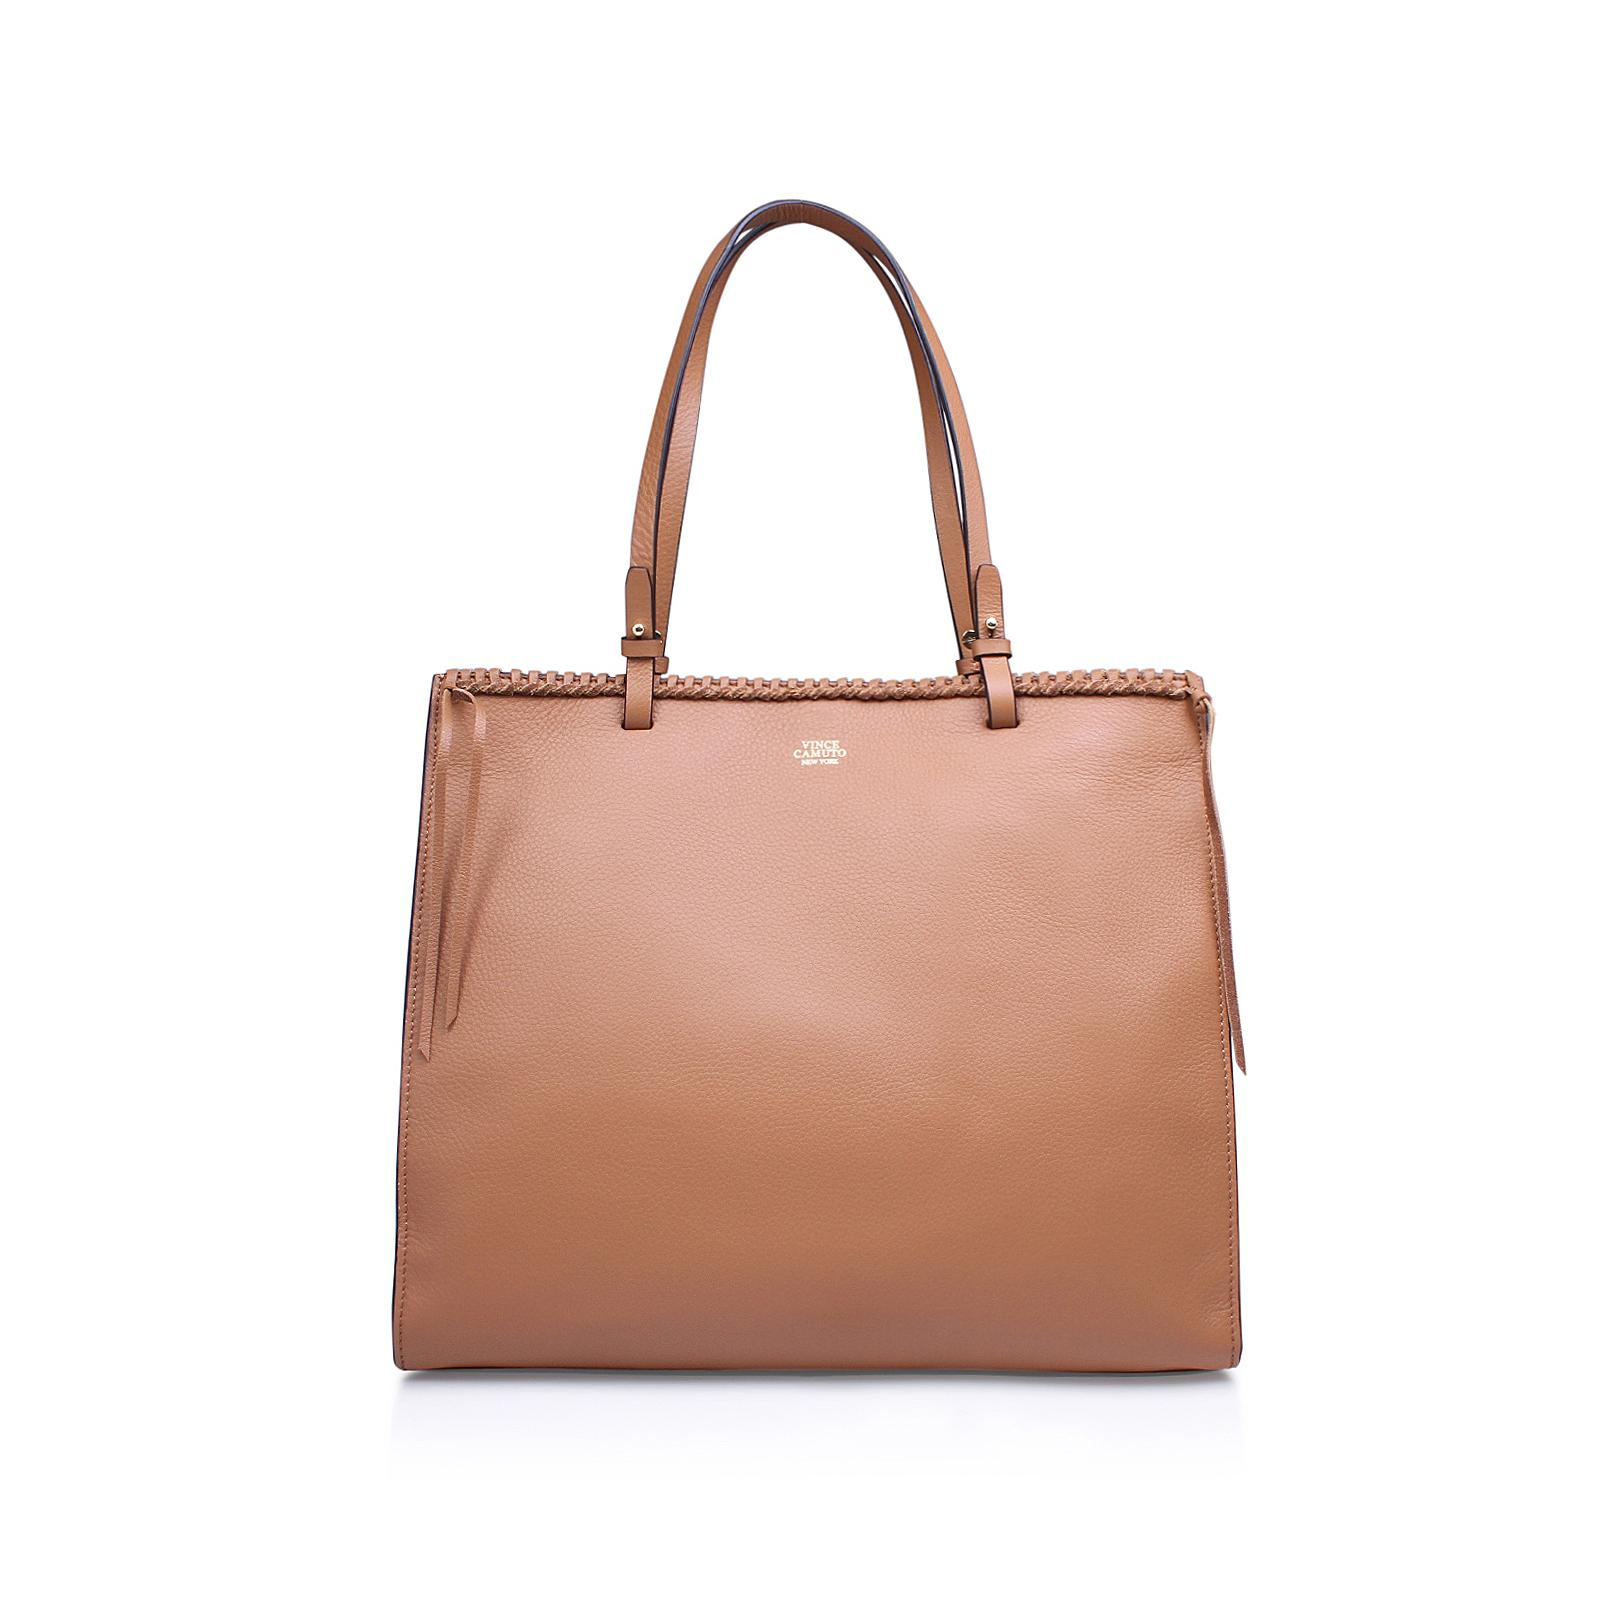 Vince Camuto Litzy Tote in Brown